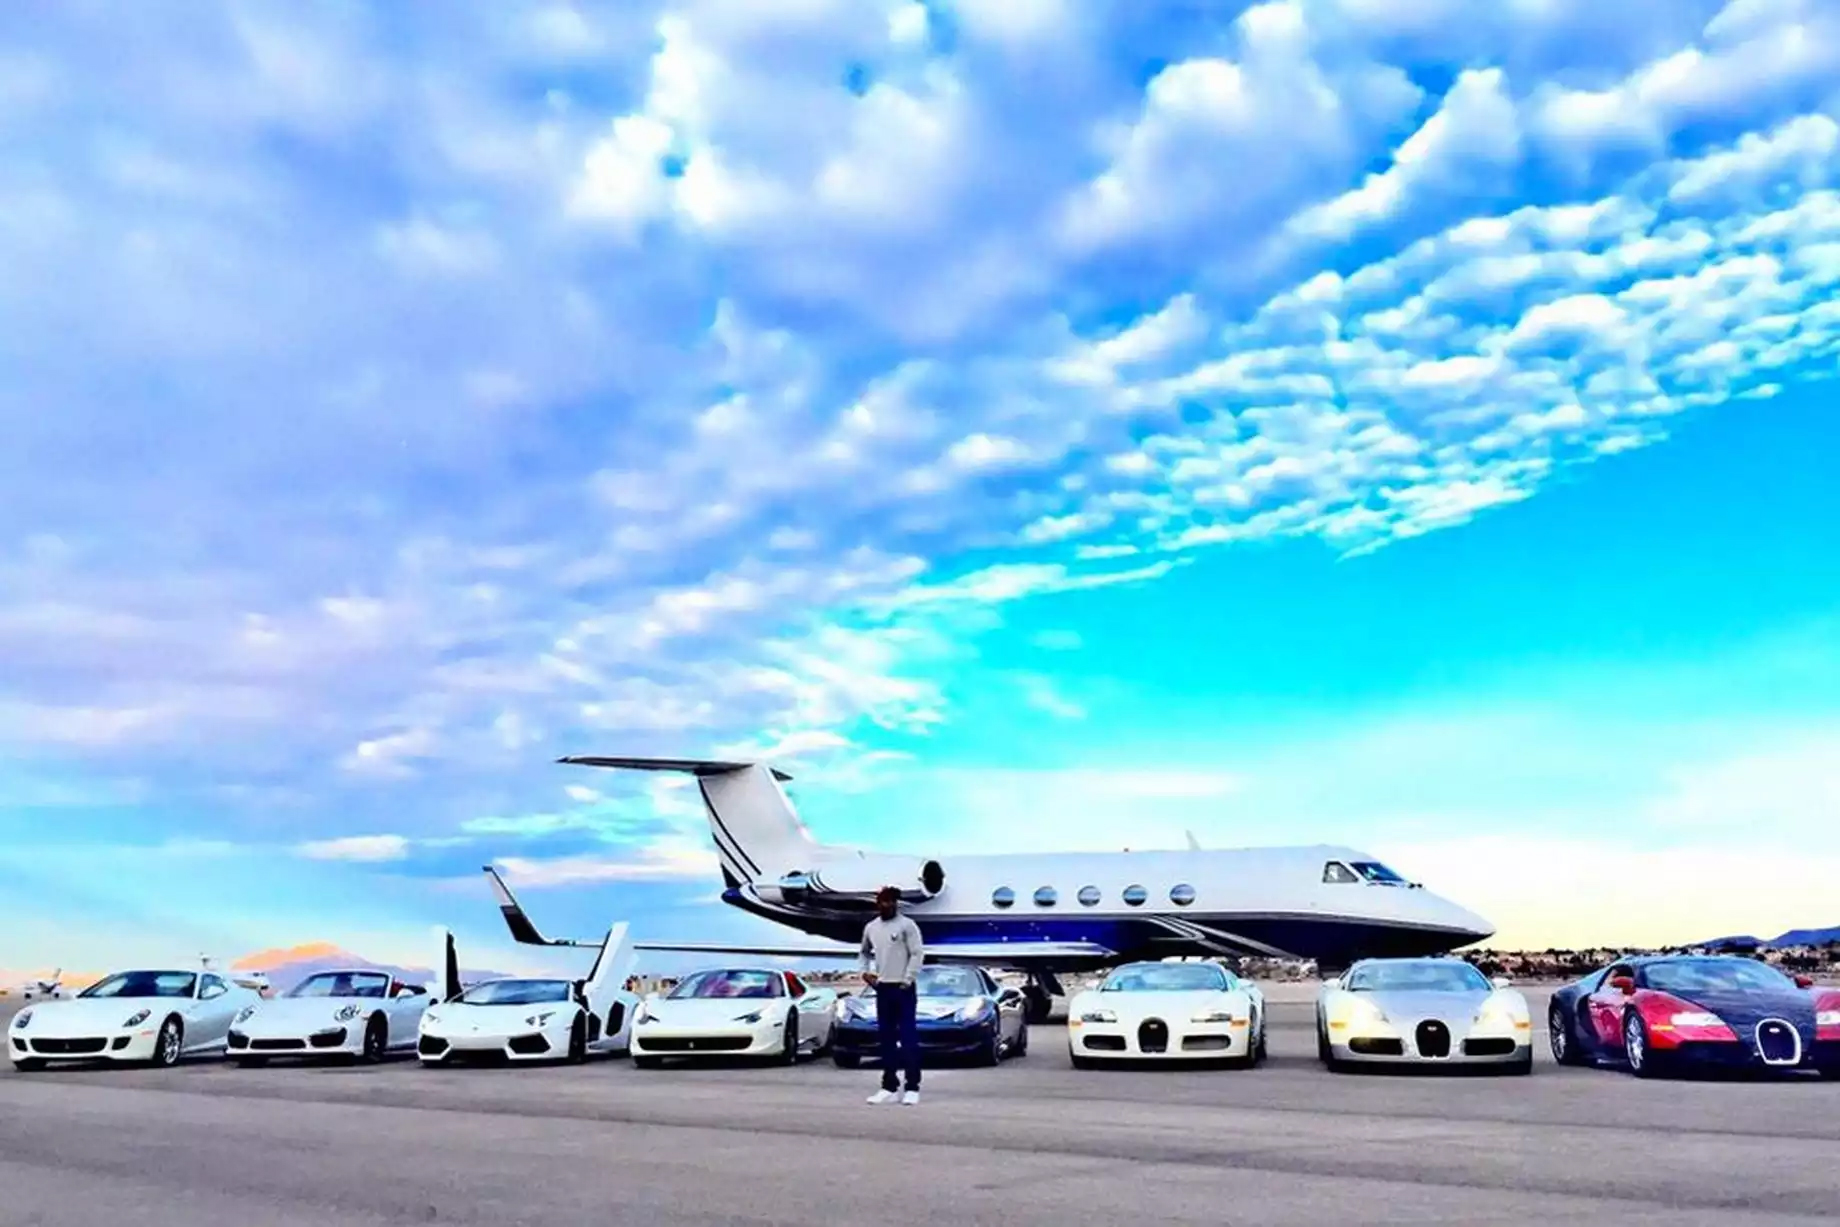 Mayweather Private Jet and Cars